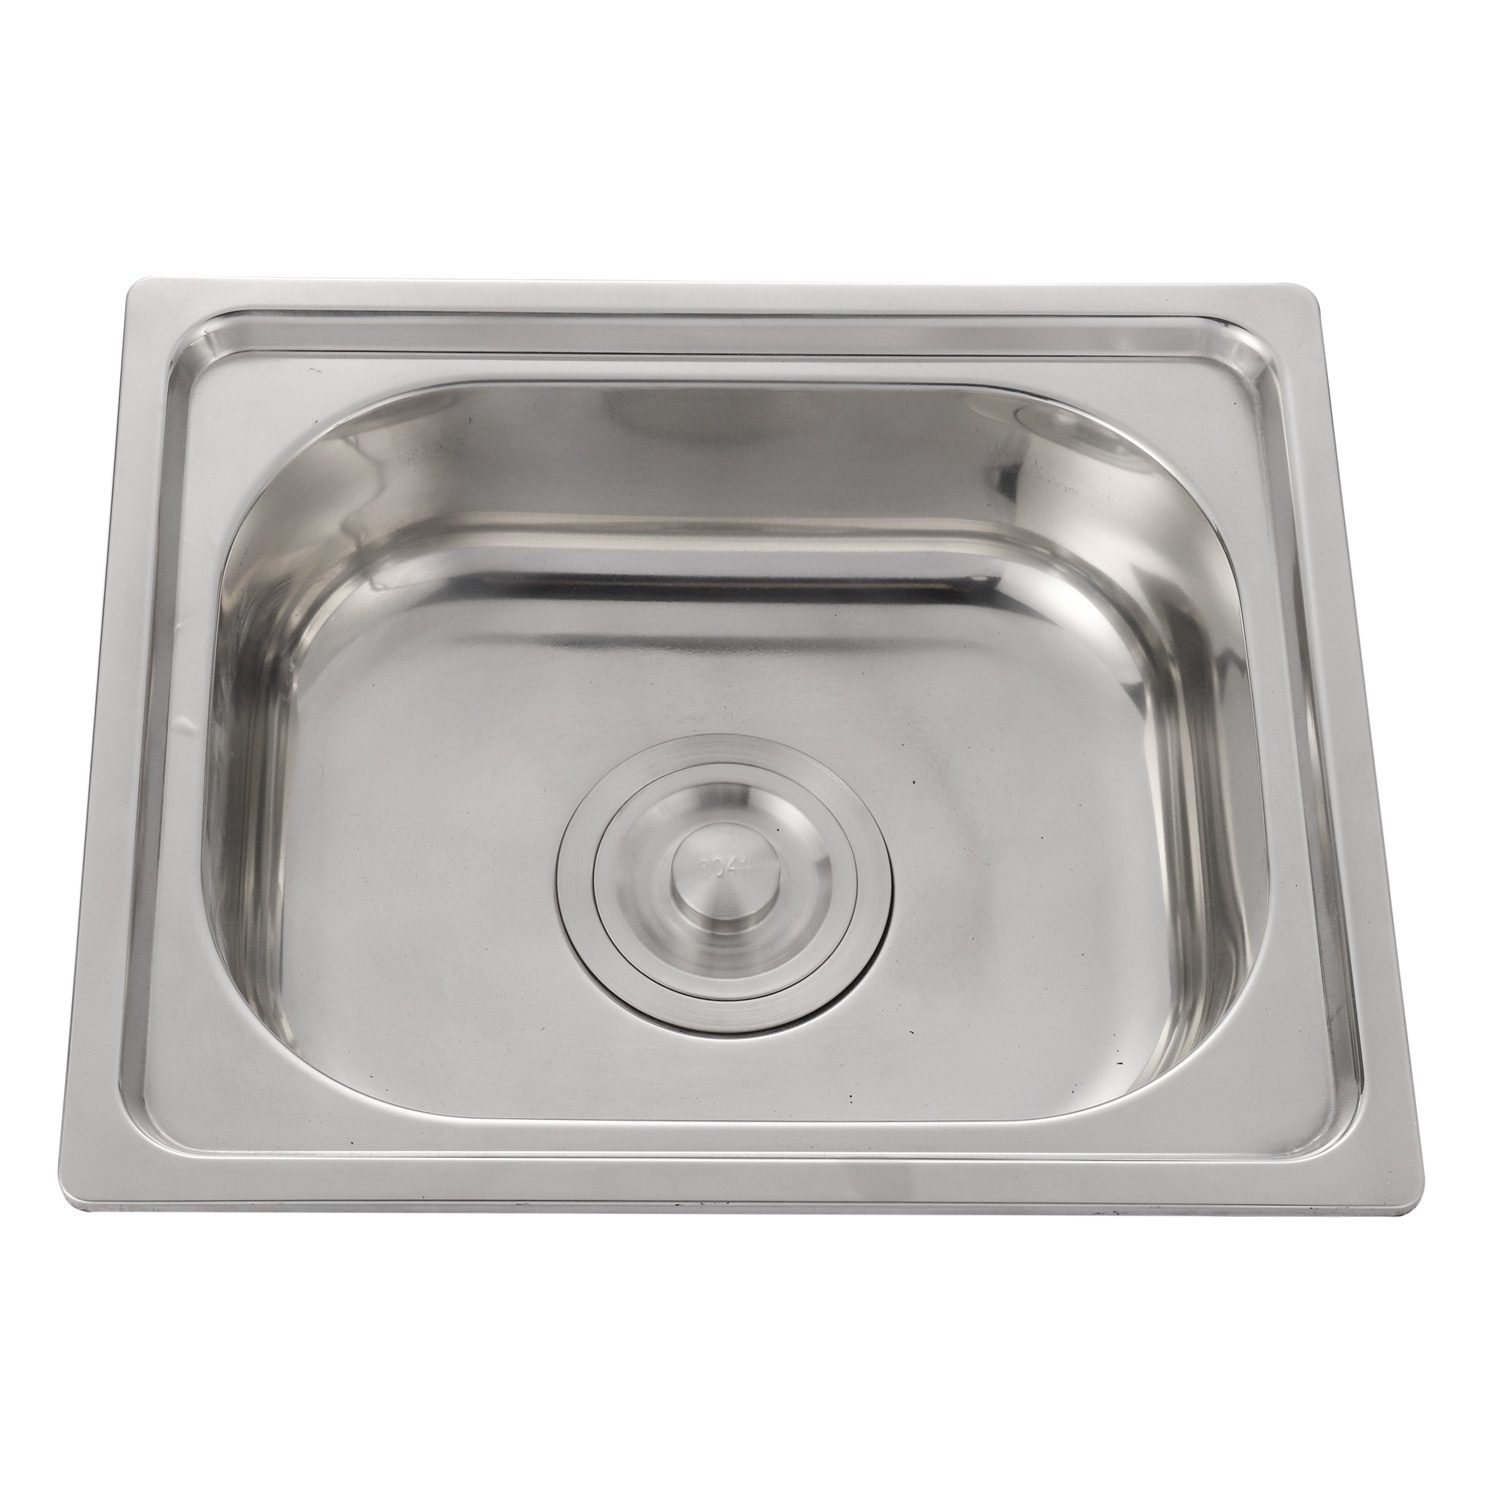 [Hot Item] 201 Sink Cheap Price Stainless Steel Single Bowl Undermount Sink  Ls-5237A